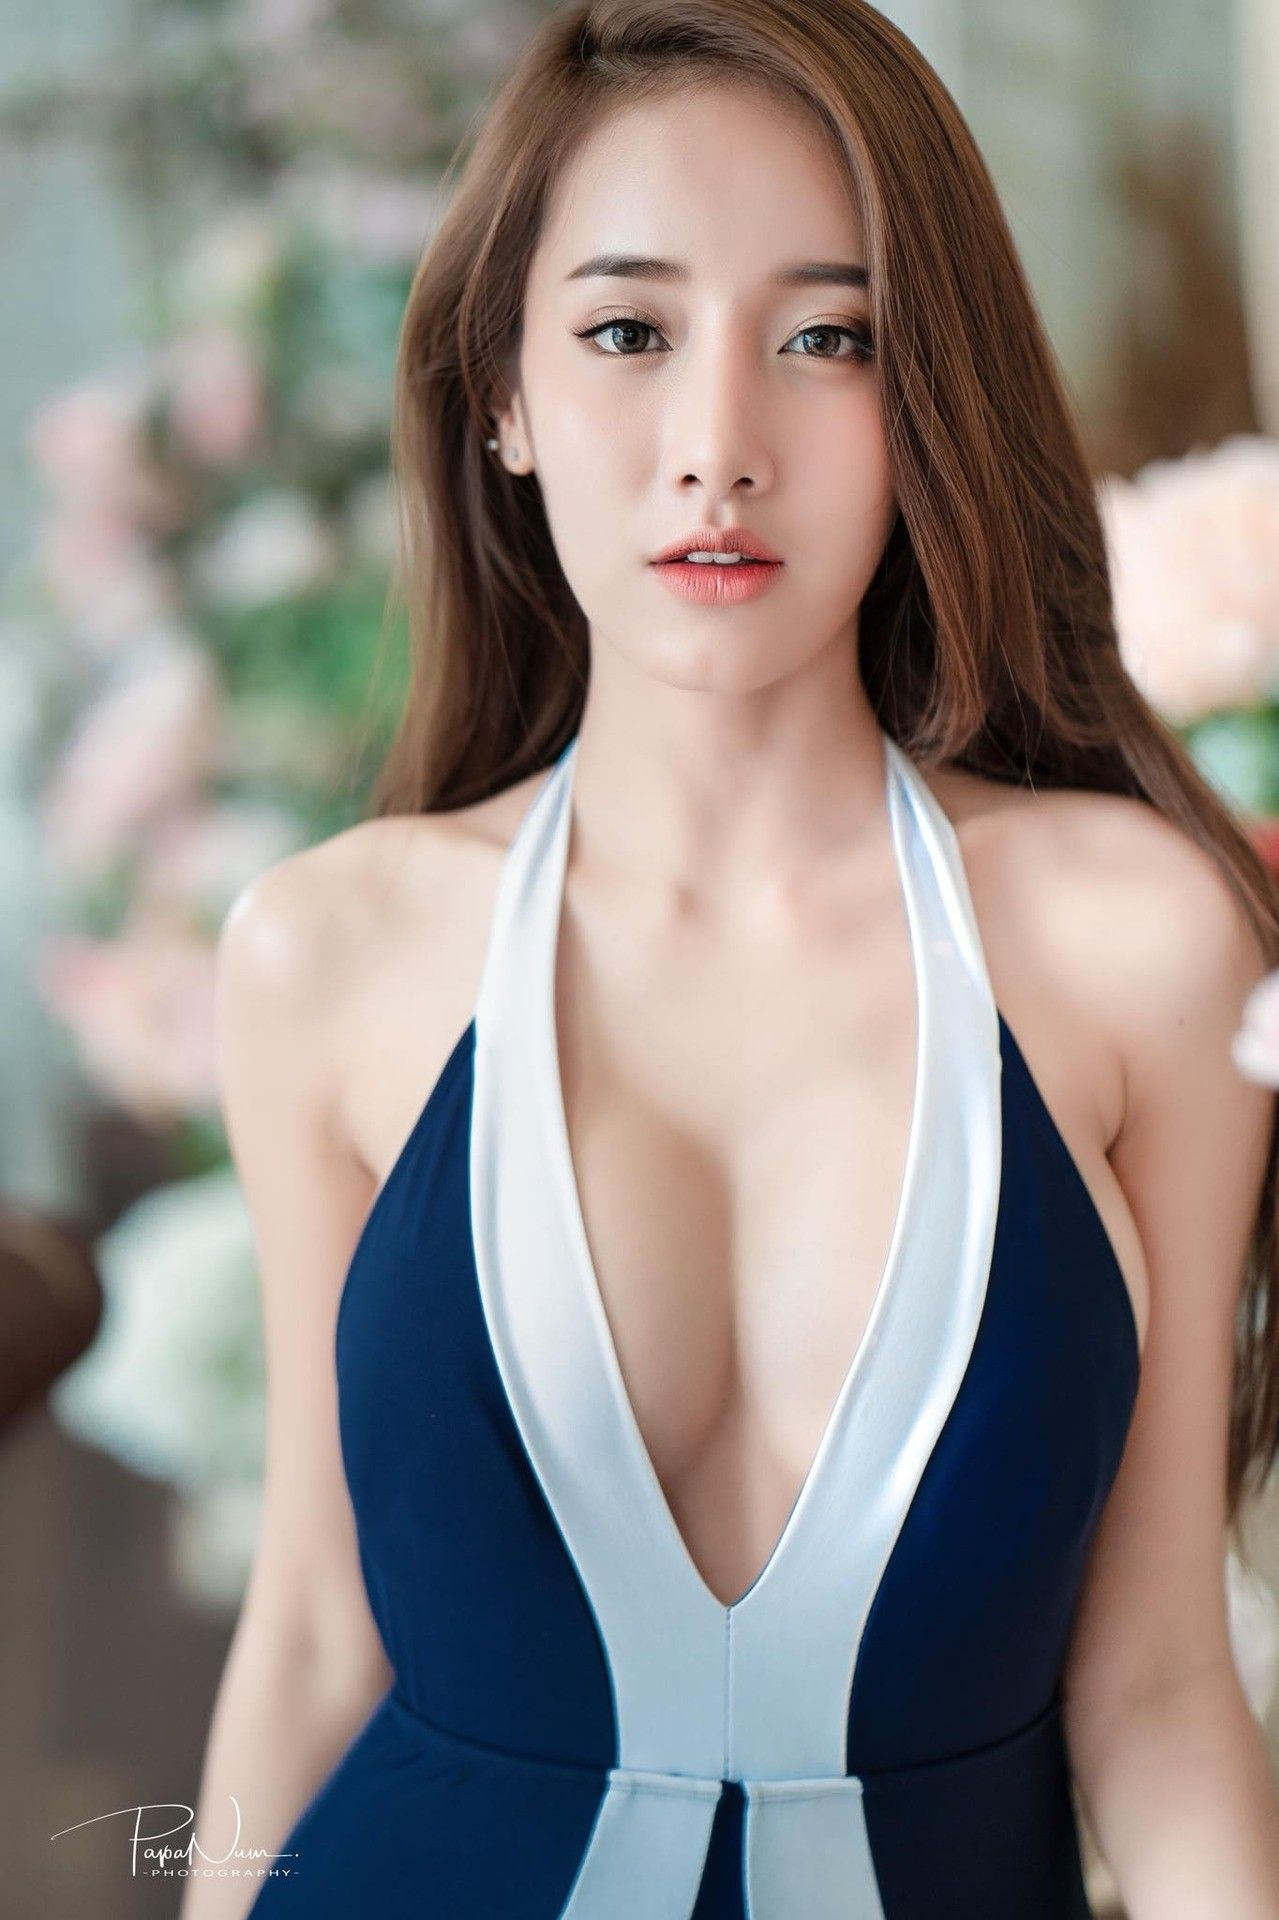 Cleavage Soo Yeon Lee naked (24 photo), Sexy, Is a cute, Instagram, cleavage 2020